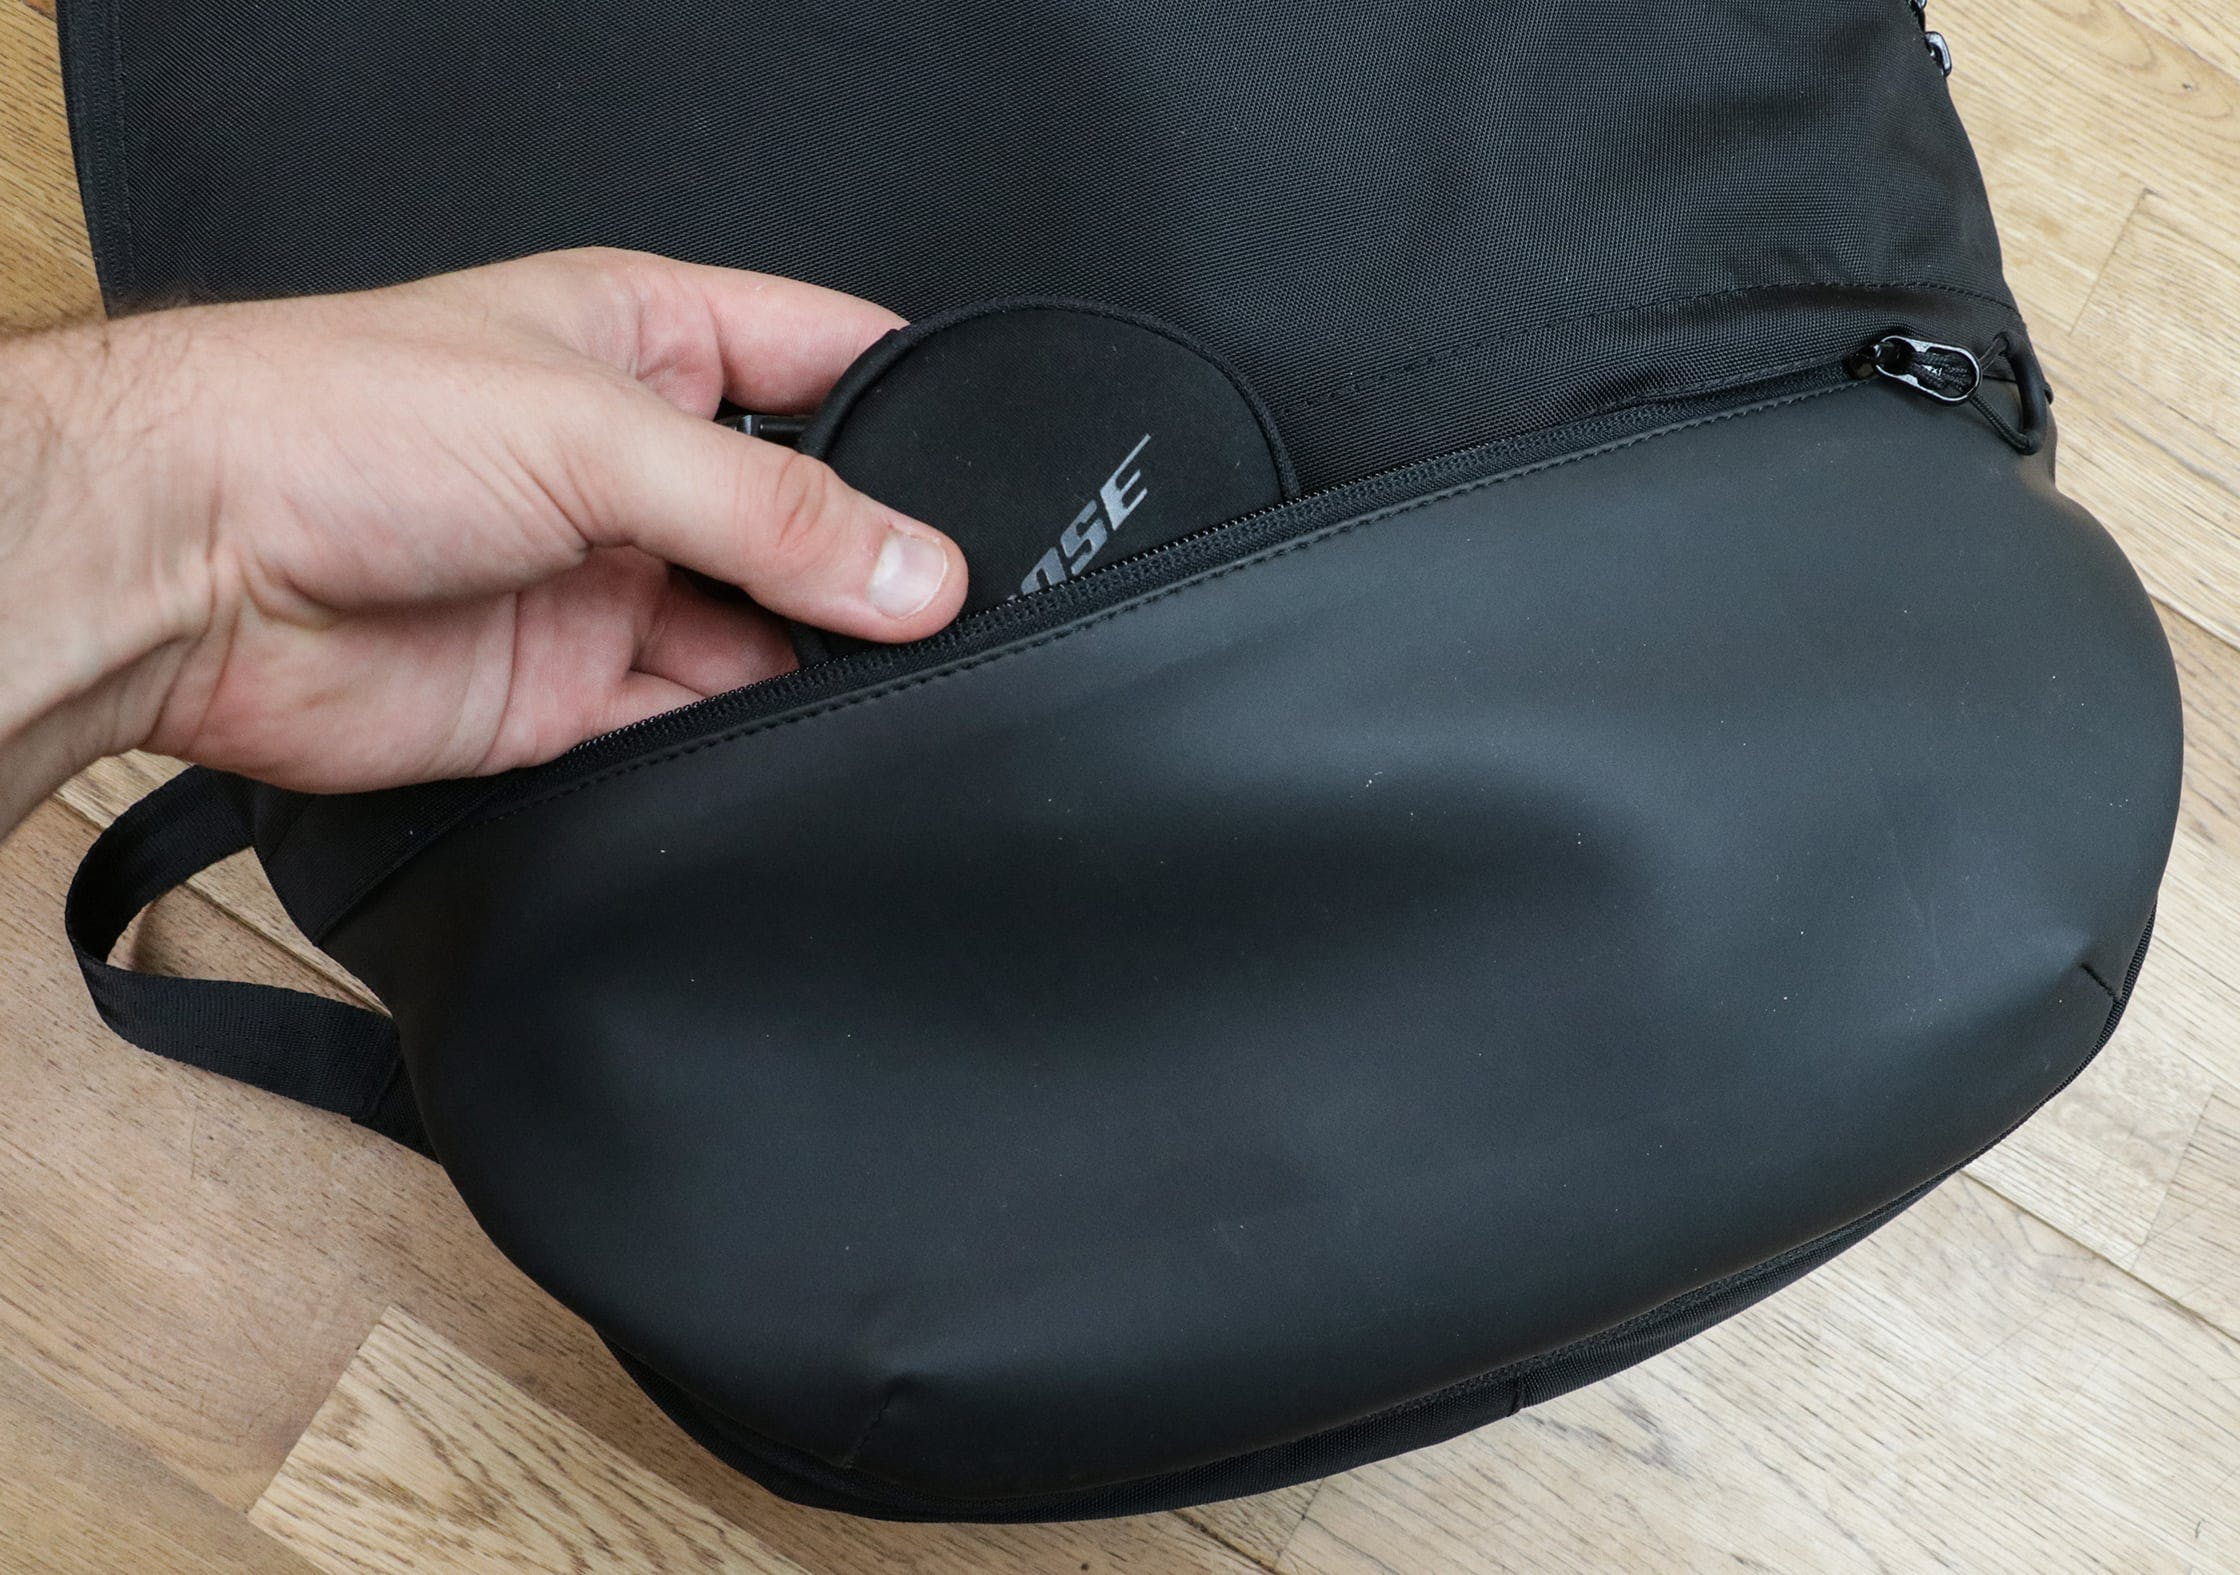 OPPOSETHIS Invisible Carry-On Front Quick-Grab Pocket At The Bottom